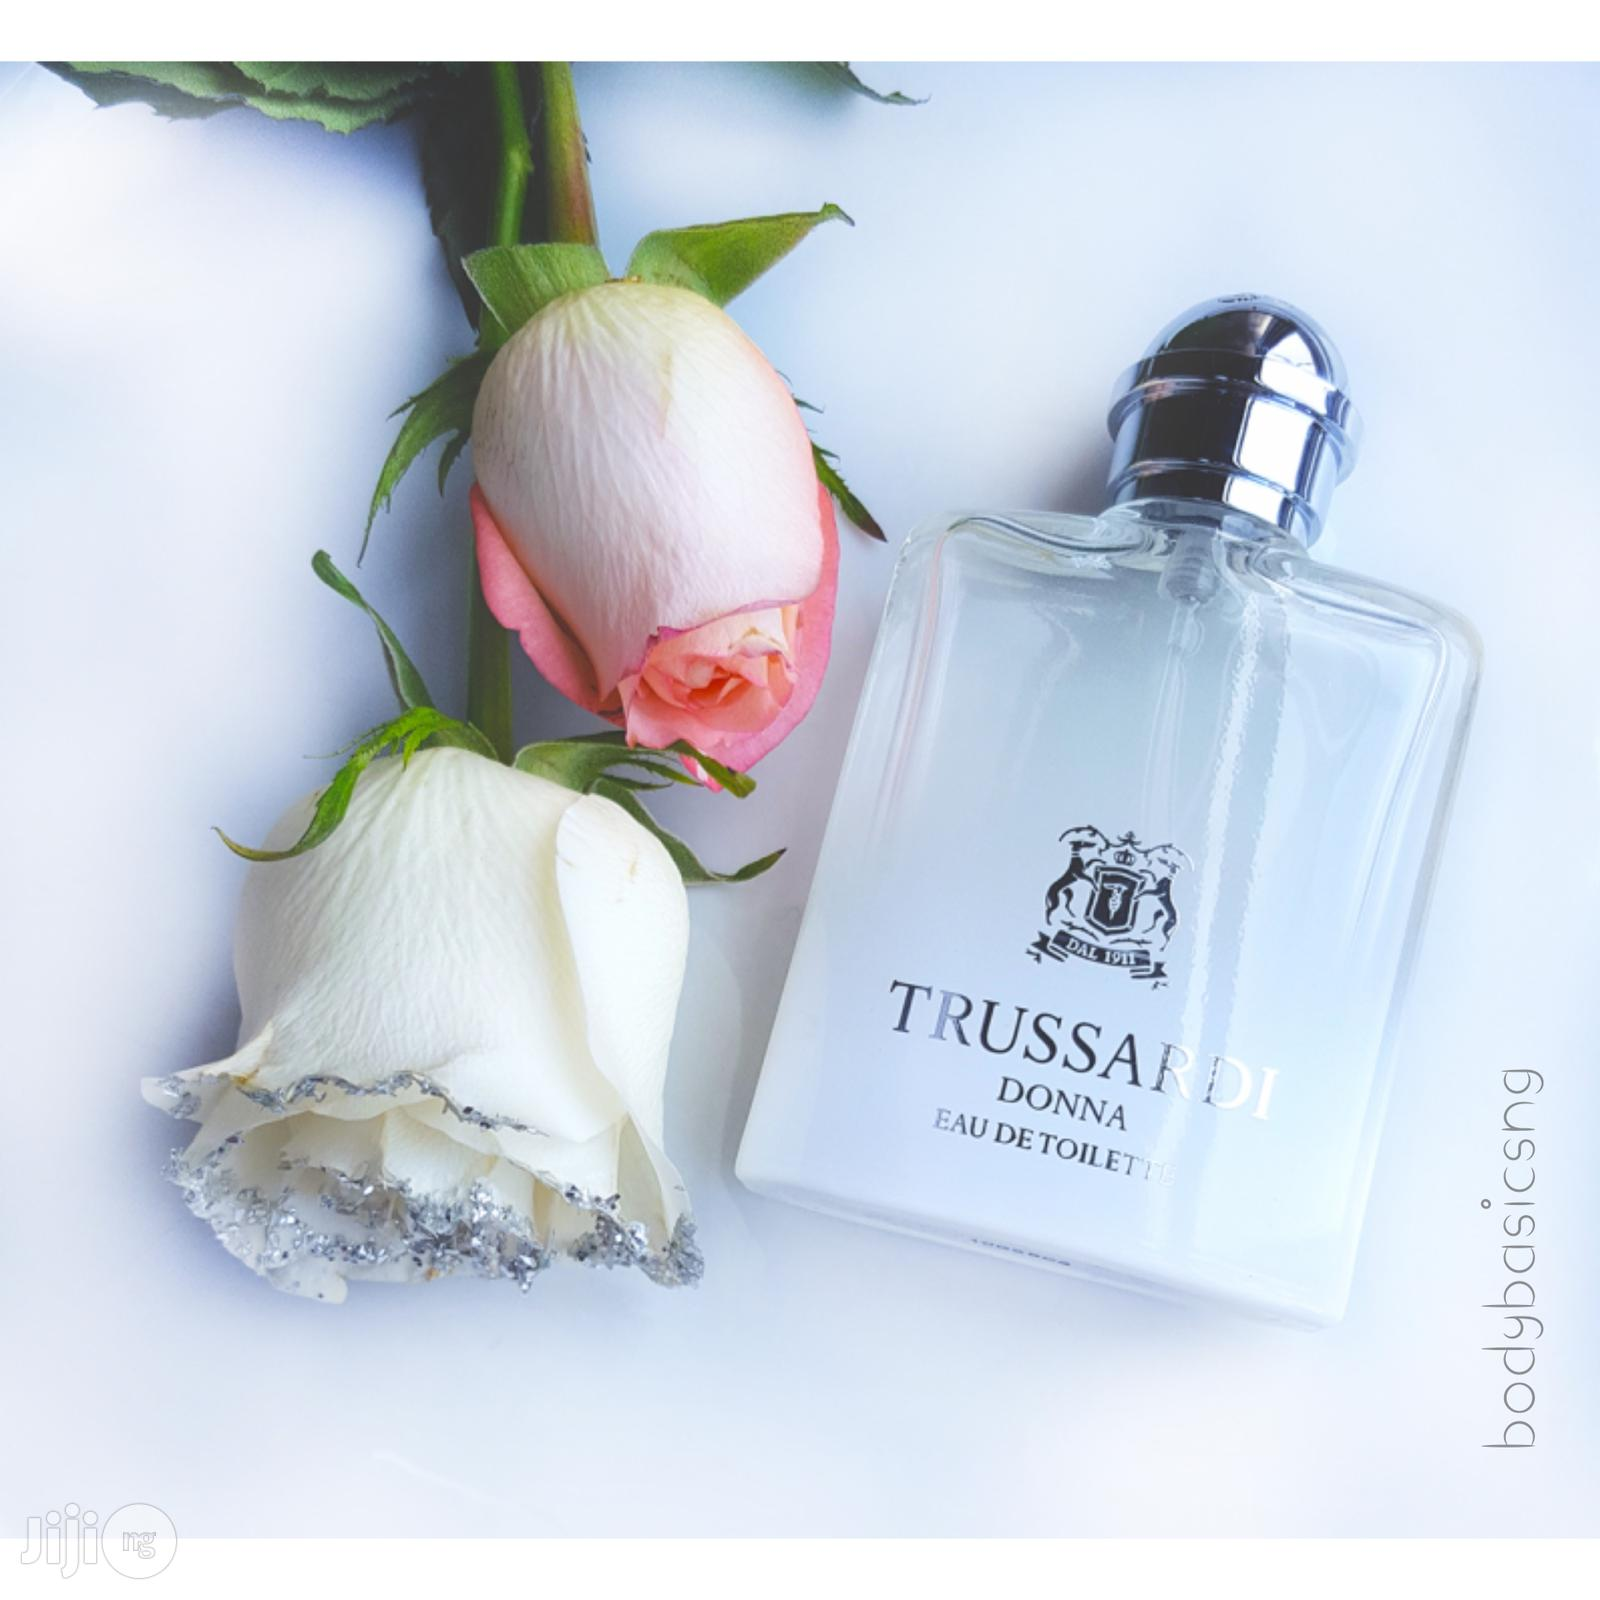 TRUSSARDI DONNA Oil 30ml Plus 2 Free Samples | Fragrance for sale in Isolo, Lagos State, Nigeria